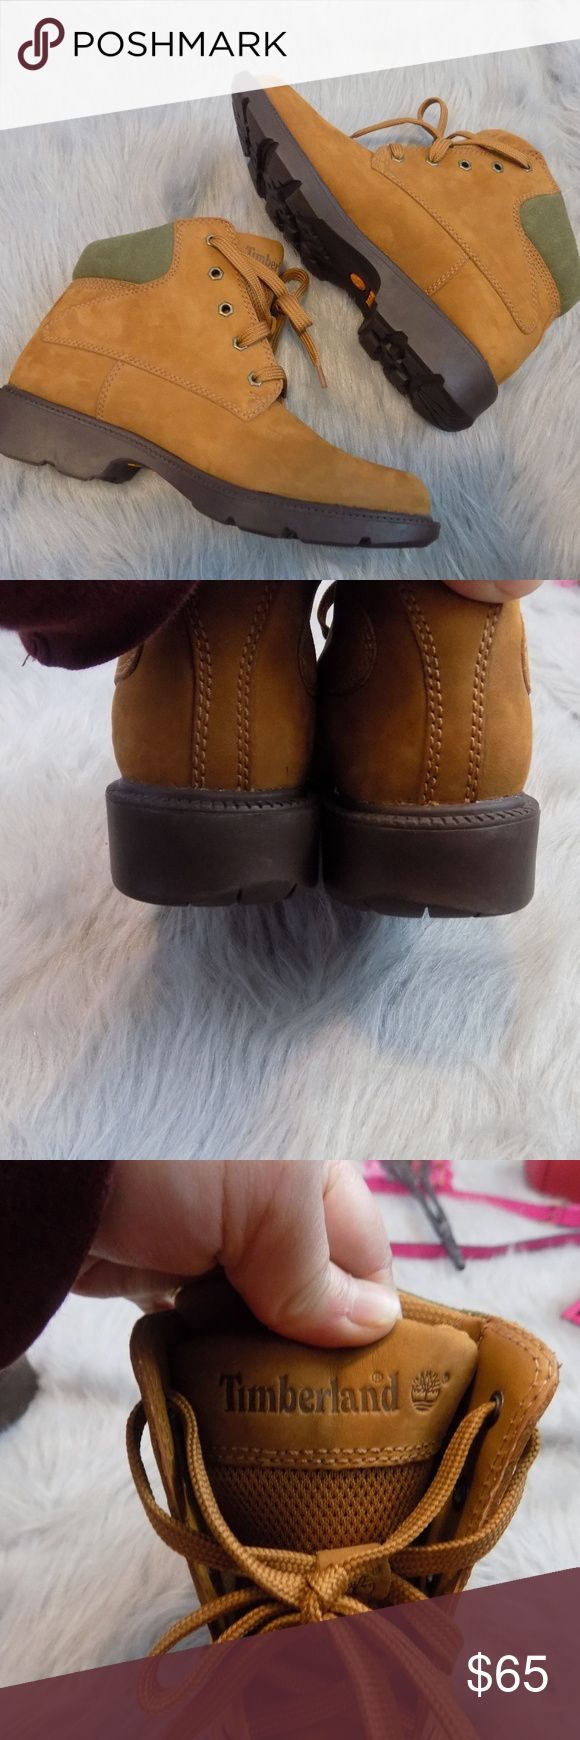 Womens Timberland Ankle Boots Great condition and very clean.   Sole is clean and in excellent condition.  Inside is clean as well. Has green padded suede. Size 8.5 M Timberland Shoes Ankle Boots & Booties